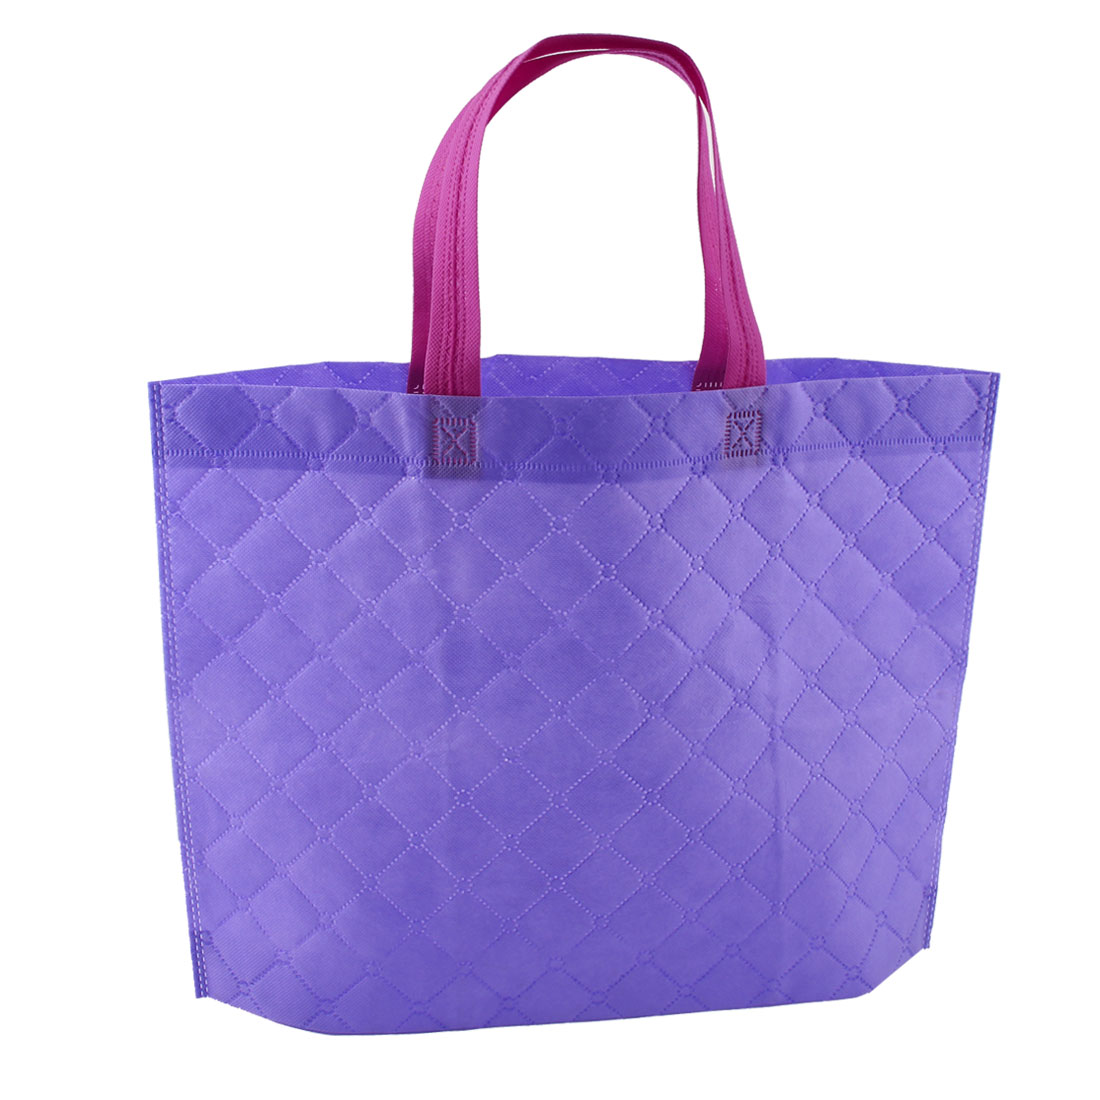 "16.9"" Length Non-Woven Recyclable Friendly Purple Shopping Bag for Saving Resources"